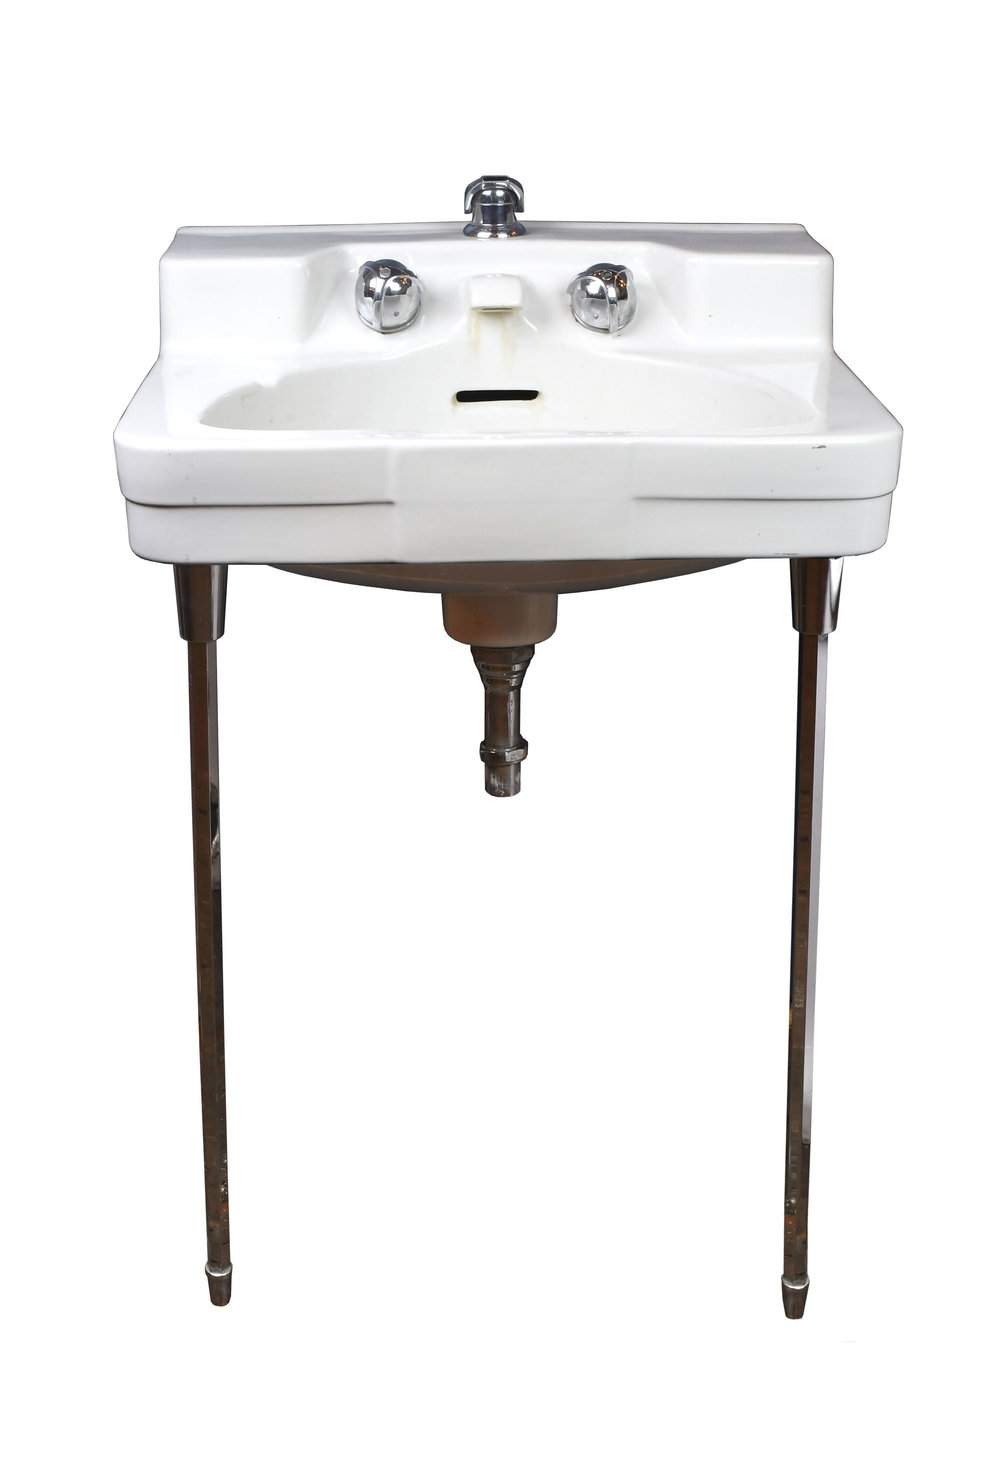 1950u0027s Wall Mount Sink With Chrome Legs